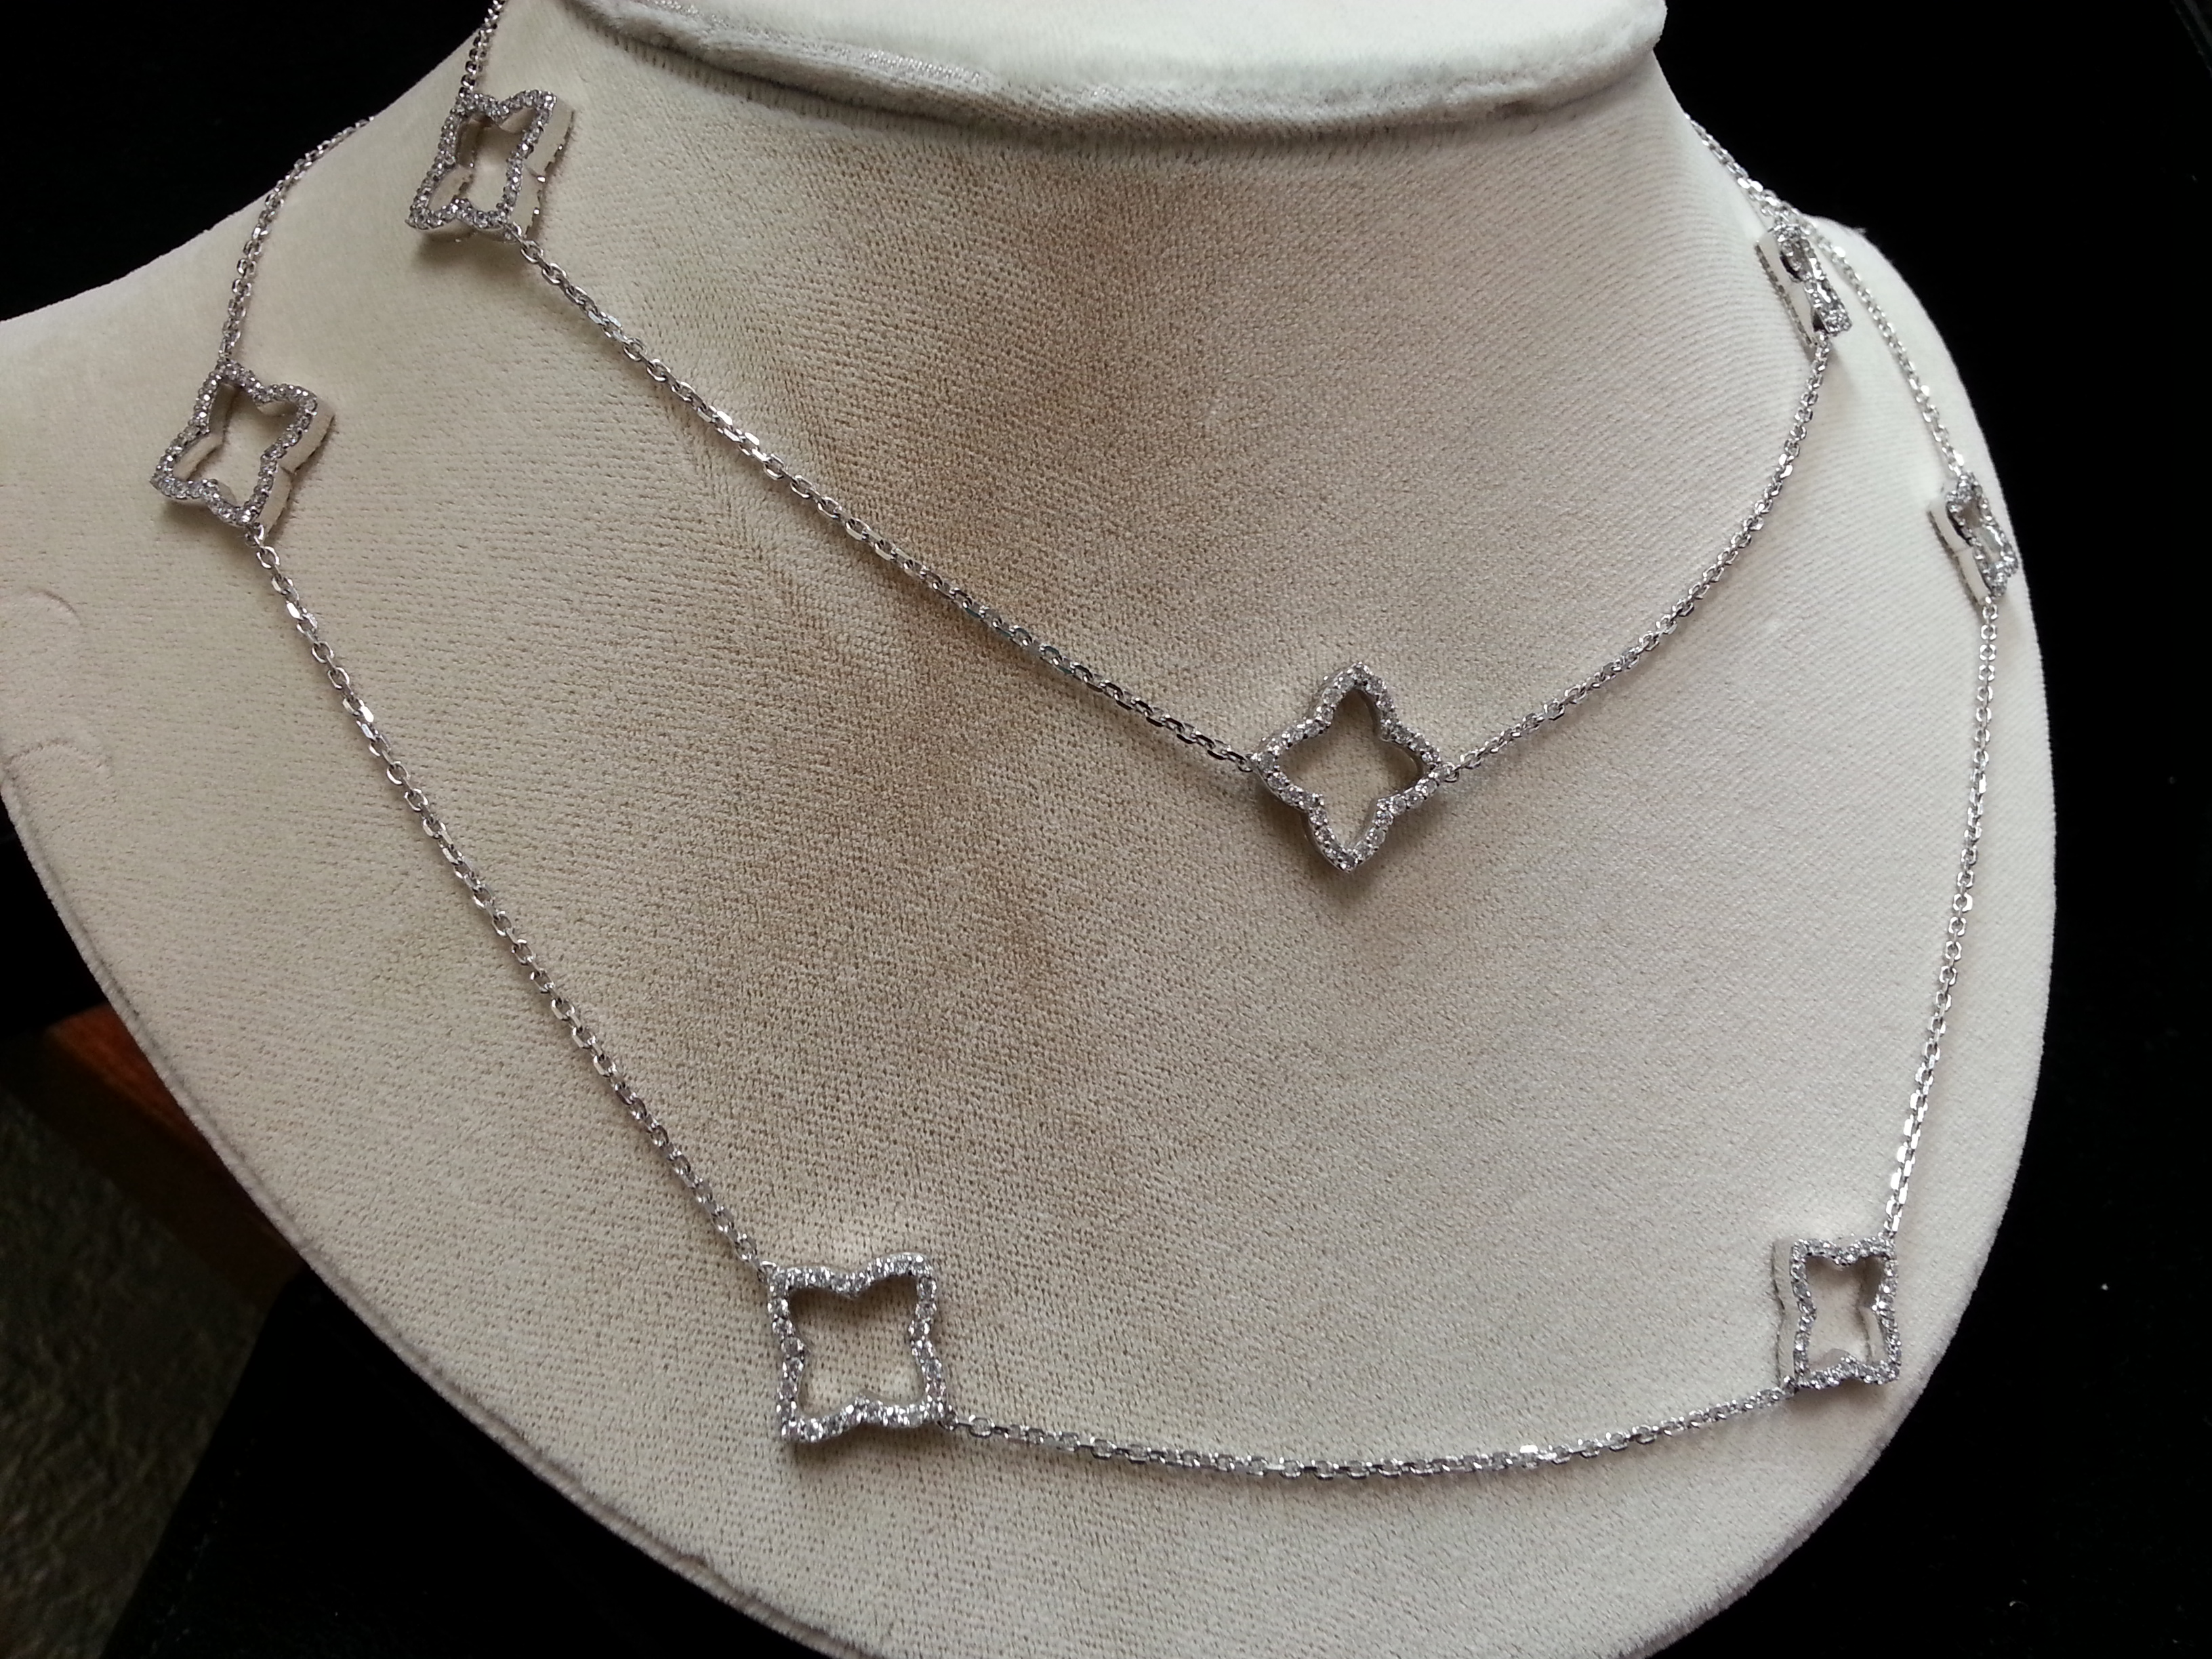 """Clover Necklace218k White Gold 35"""" Long Diamond Clover Necklace. There is 5.75ctw of Diamonds."""